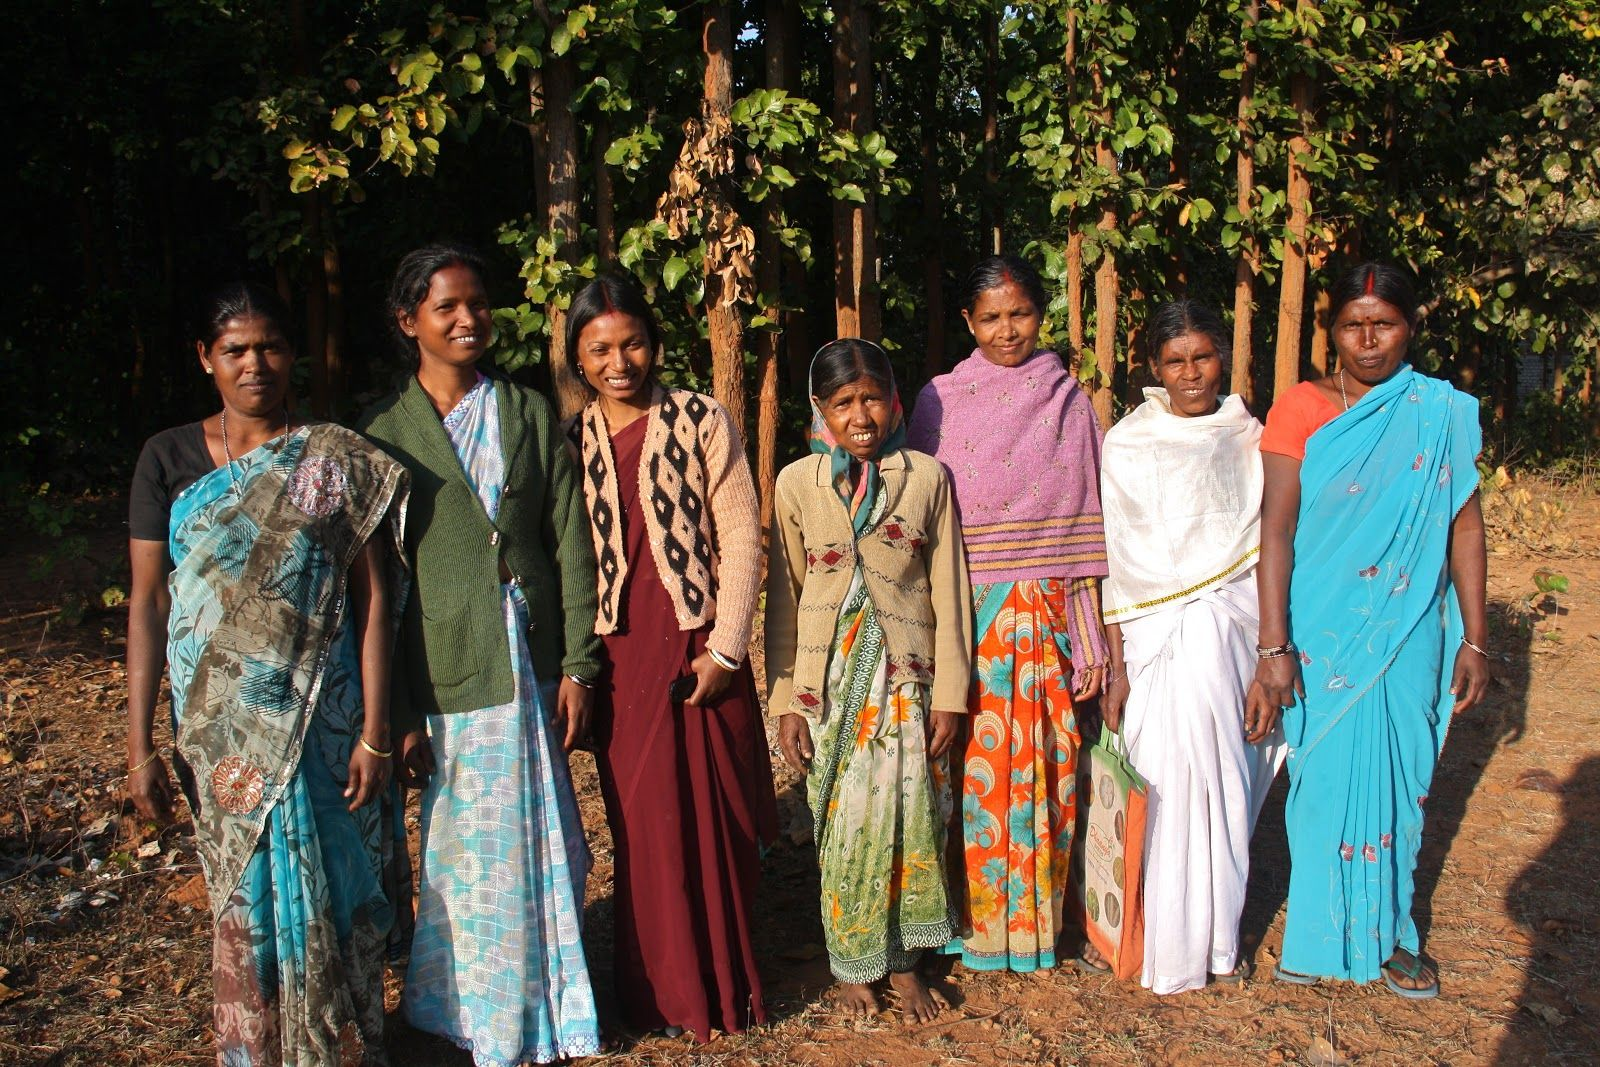 Adivasi women play a crucial role in Jharkhand's Save the